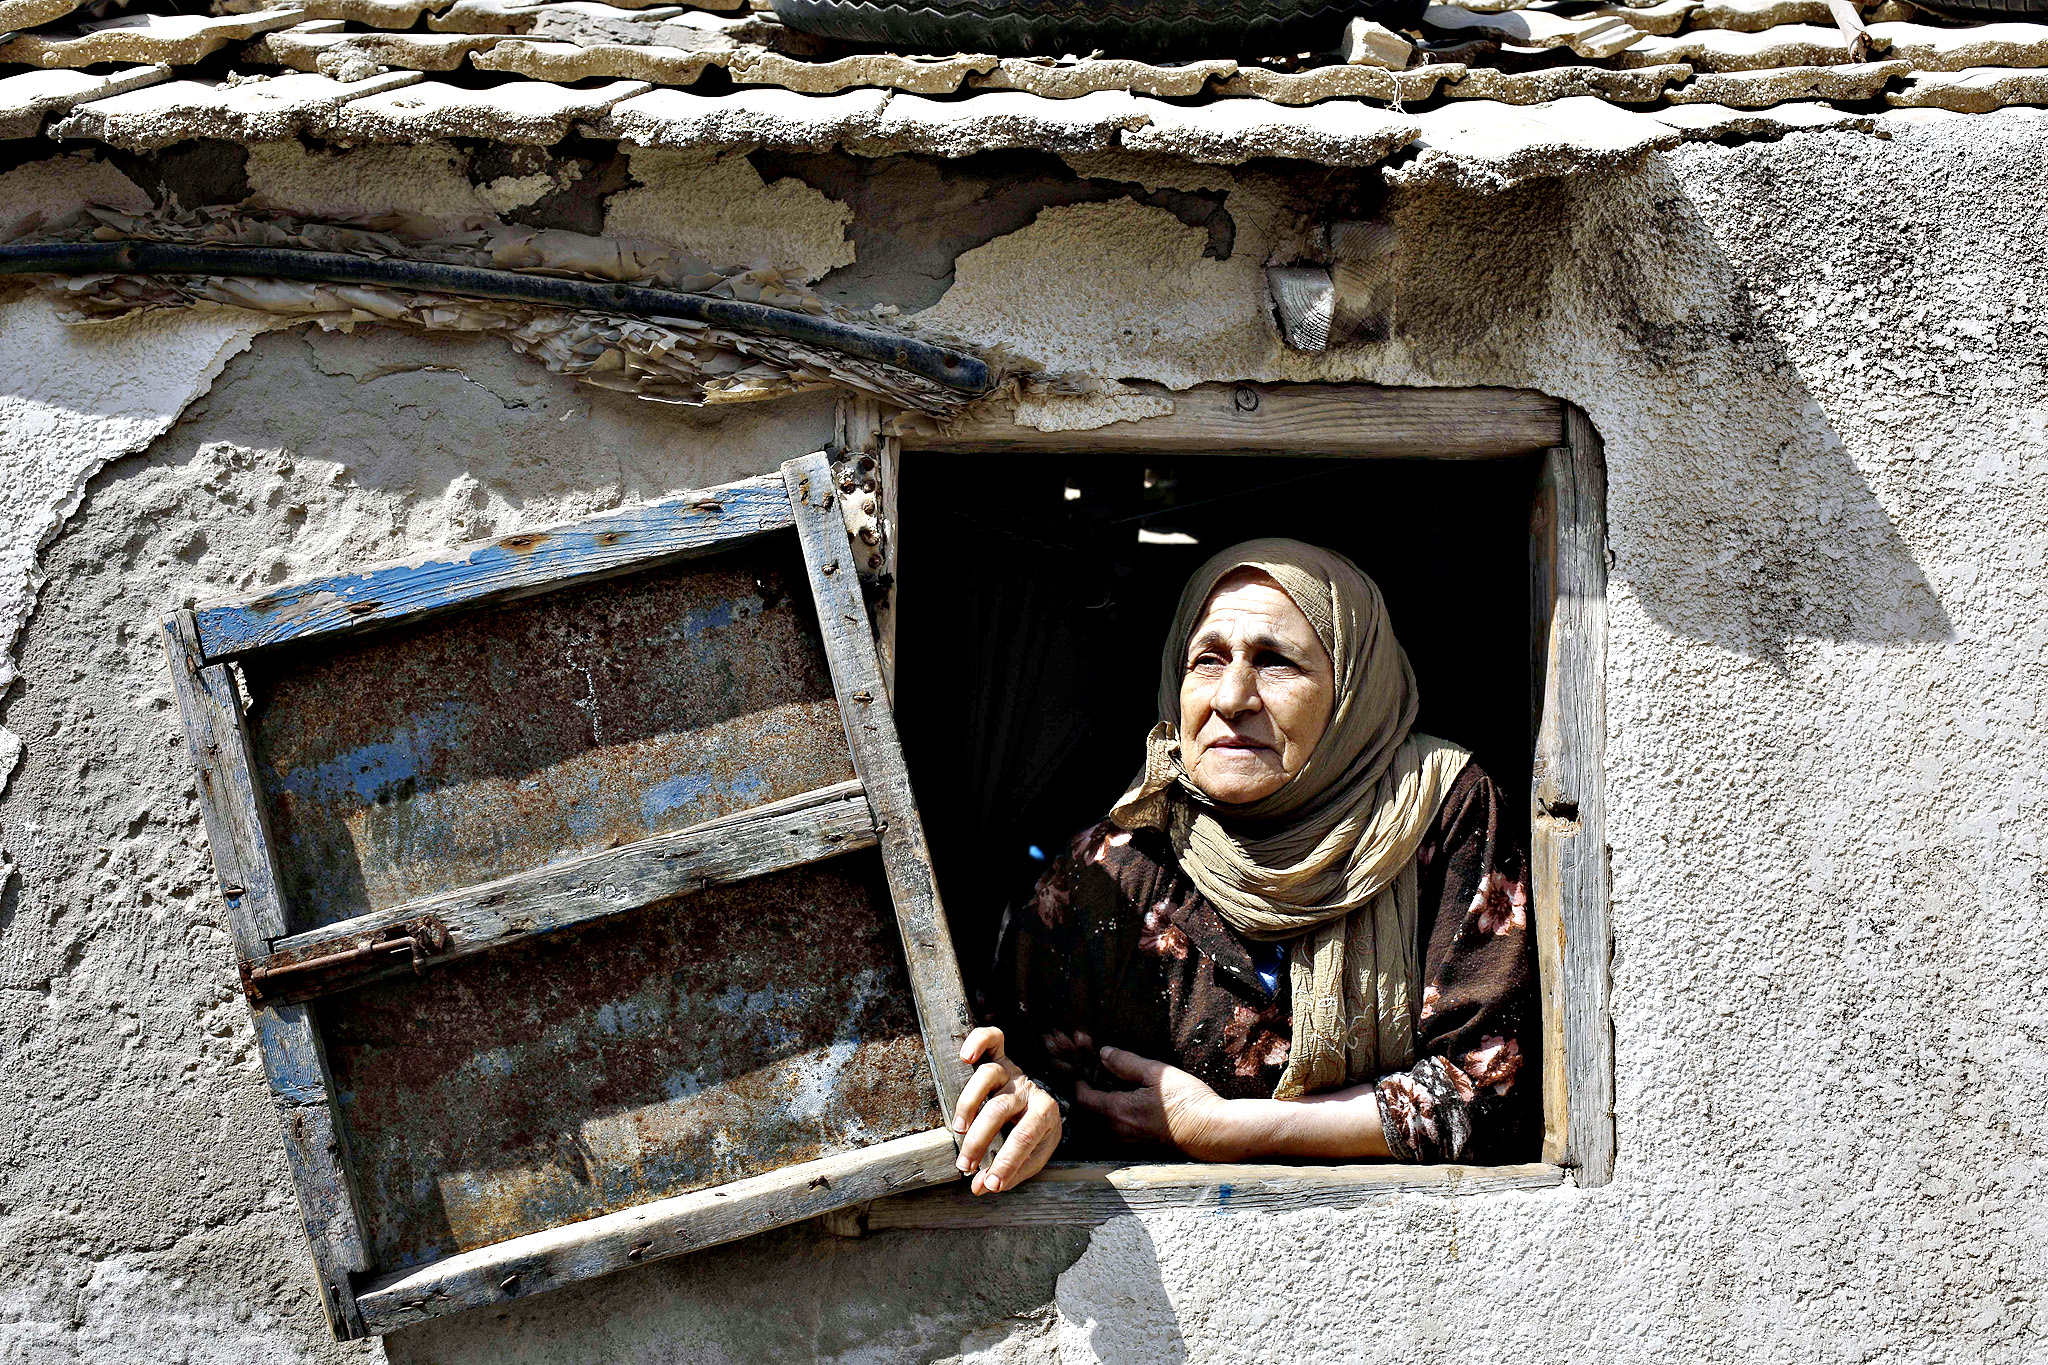 "A Palestinian woman looks from a window of her house in the Al-Shati refugee camp in Gaza City on May 14, 2015 ahead of the commemorations for the 67th anniversary of the ""Nakba"". ""Nakba"" means in Arabic ""catastrophe"" in reference to the birth of the state of Israel 67-years-ago in British-mandate Palestine, which led to the displacement of hundreds of thousands of Palestinians who either fled or were driven out of their homes during the 1948 war over Israel's creation"